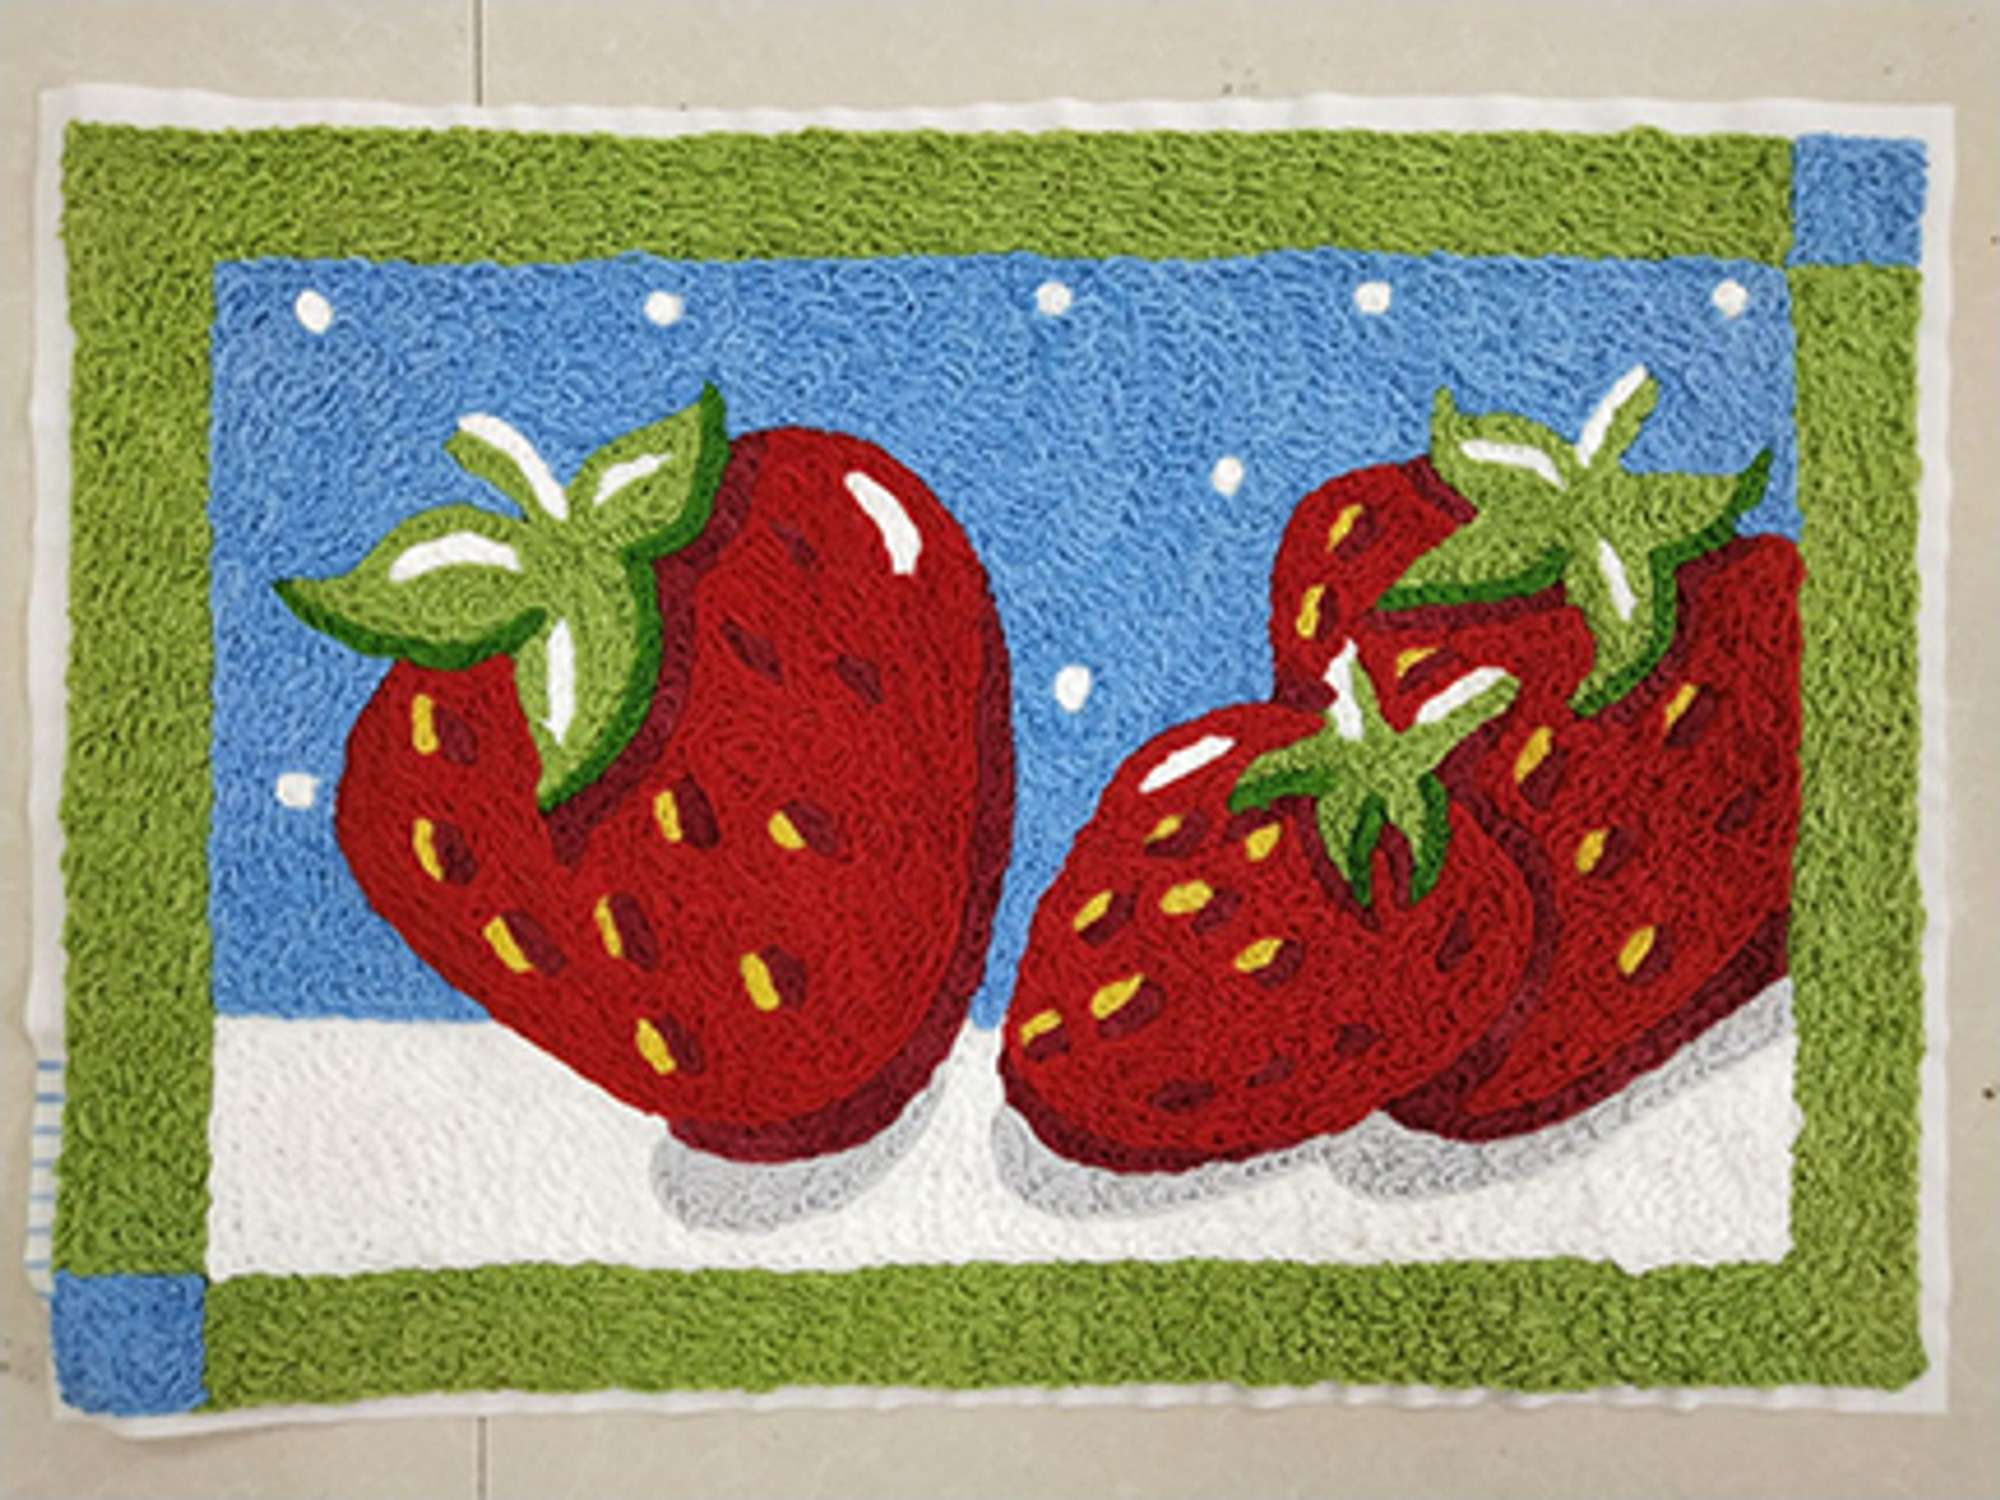 Three tantalizingly red strawberries act as the focal point for this Jellybean® accent rug by Diedre Mosher. Subdued hues of sky blue and light green frame the borders making the fruit appear all the more inviting. Machine washable durability make this accent rug suitable for indoor and outdoor use.